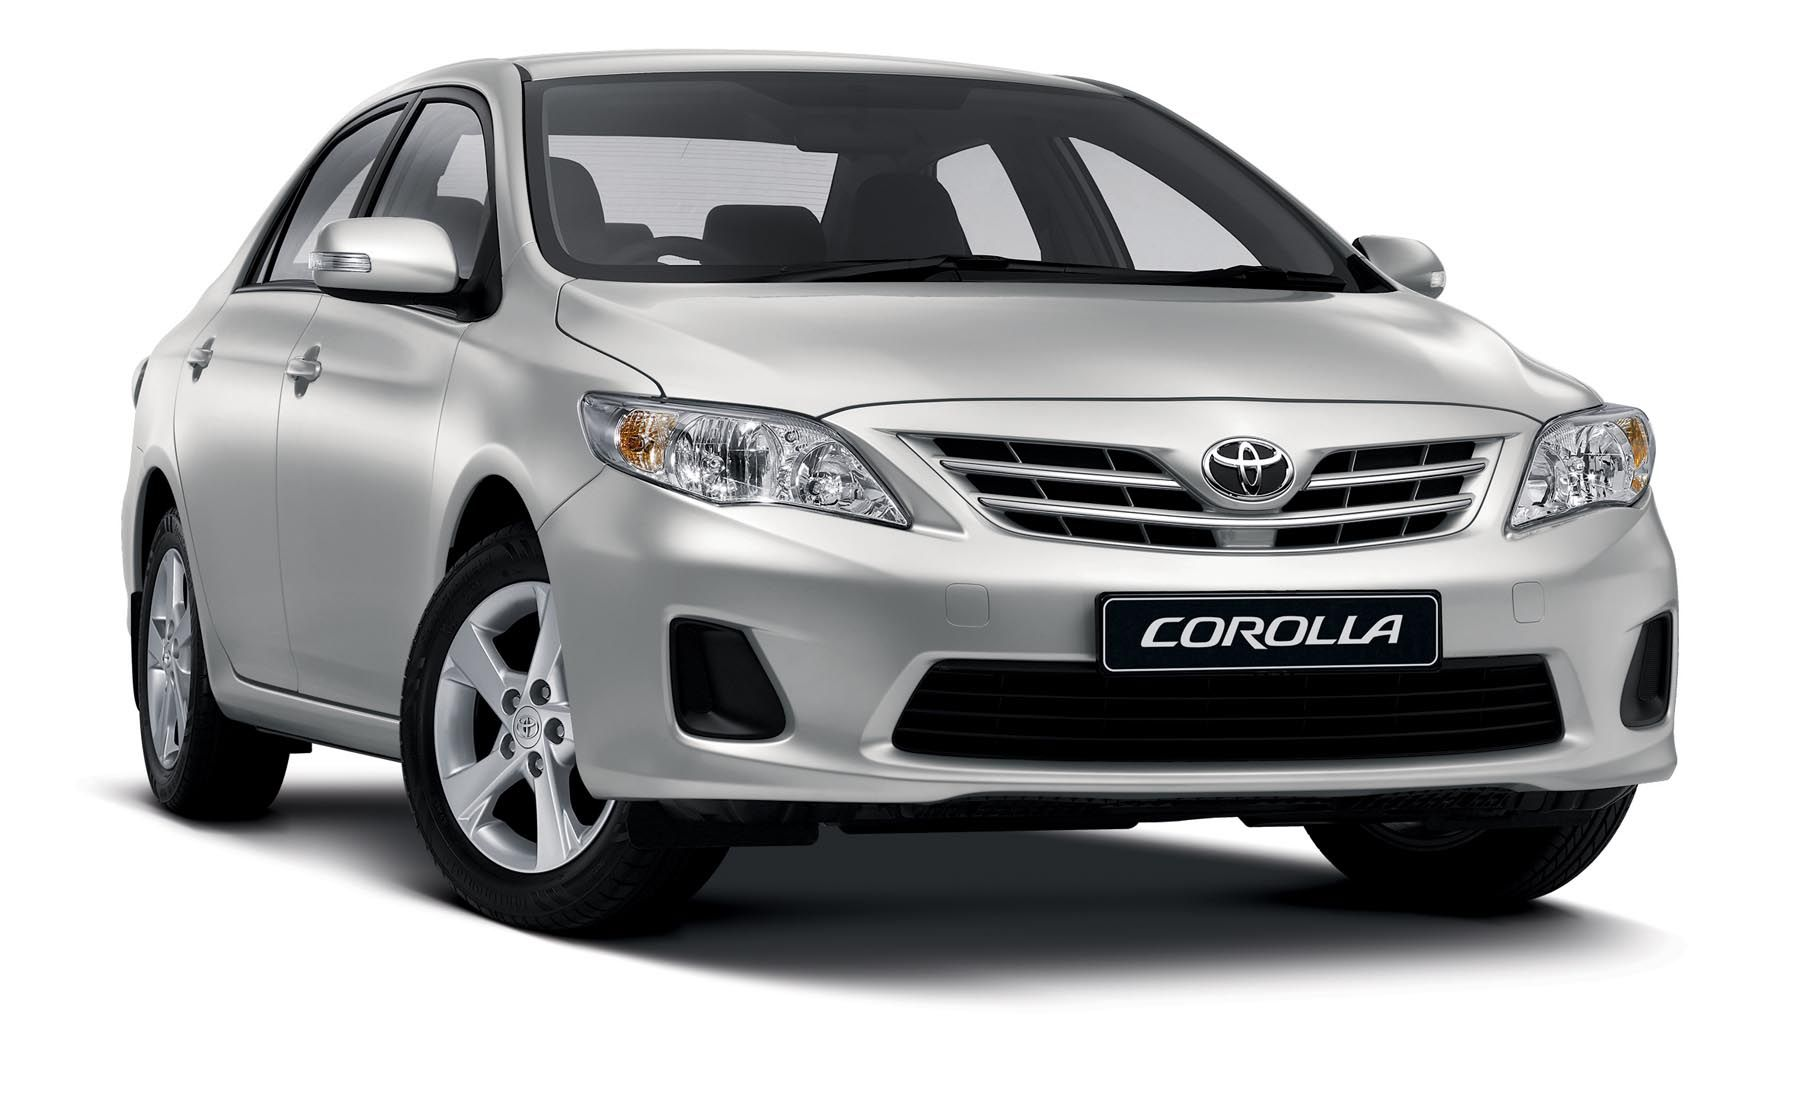 TO Get The Details Of All New Toyota Cars In India Visit QuikrCars